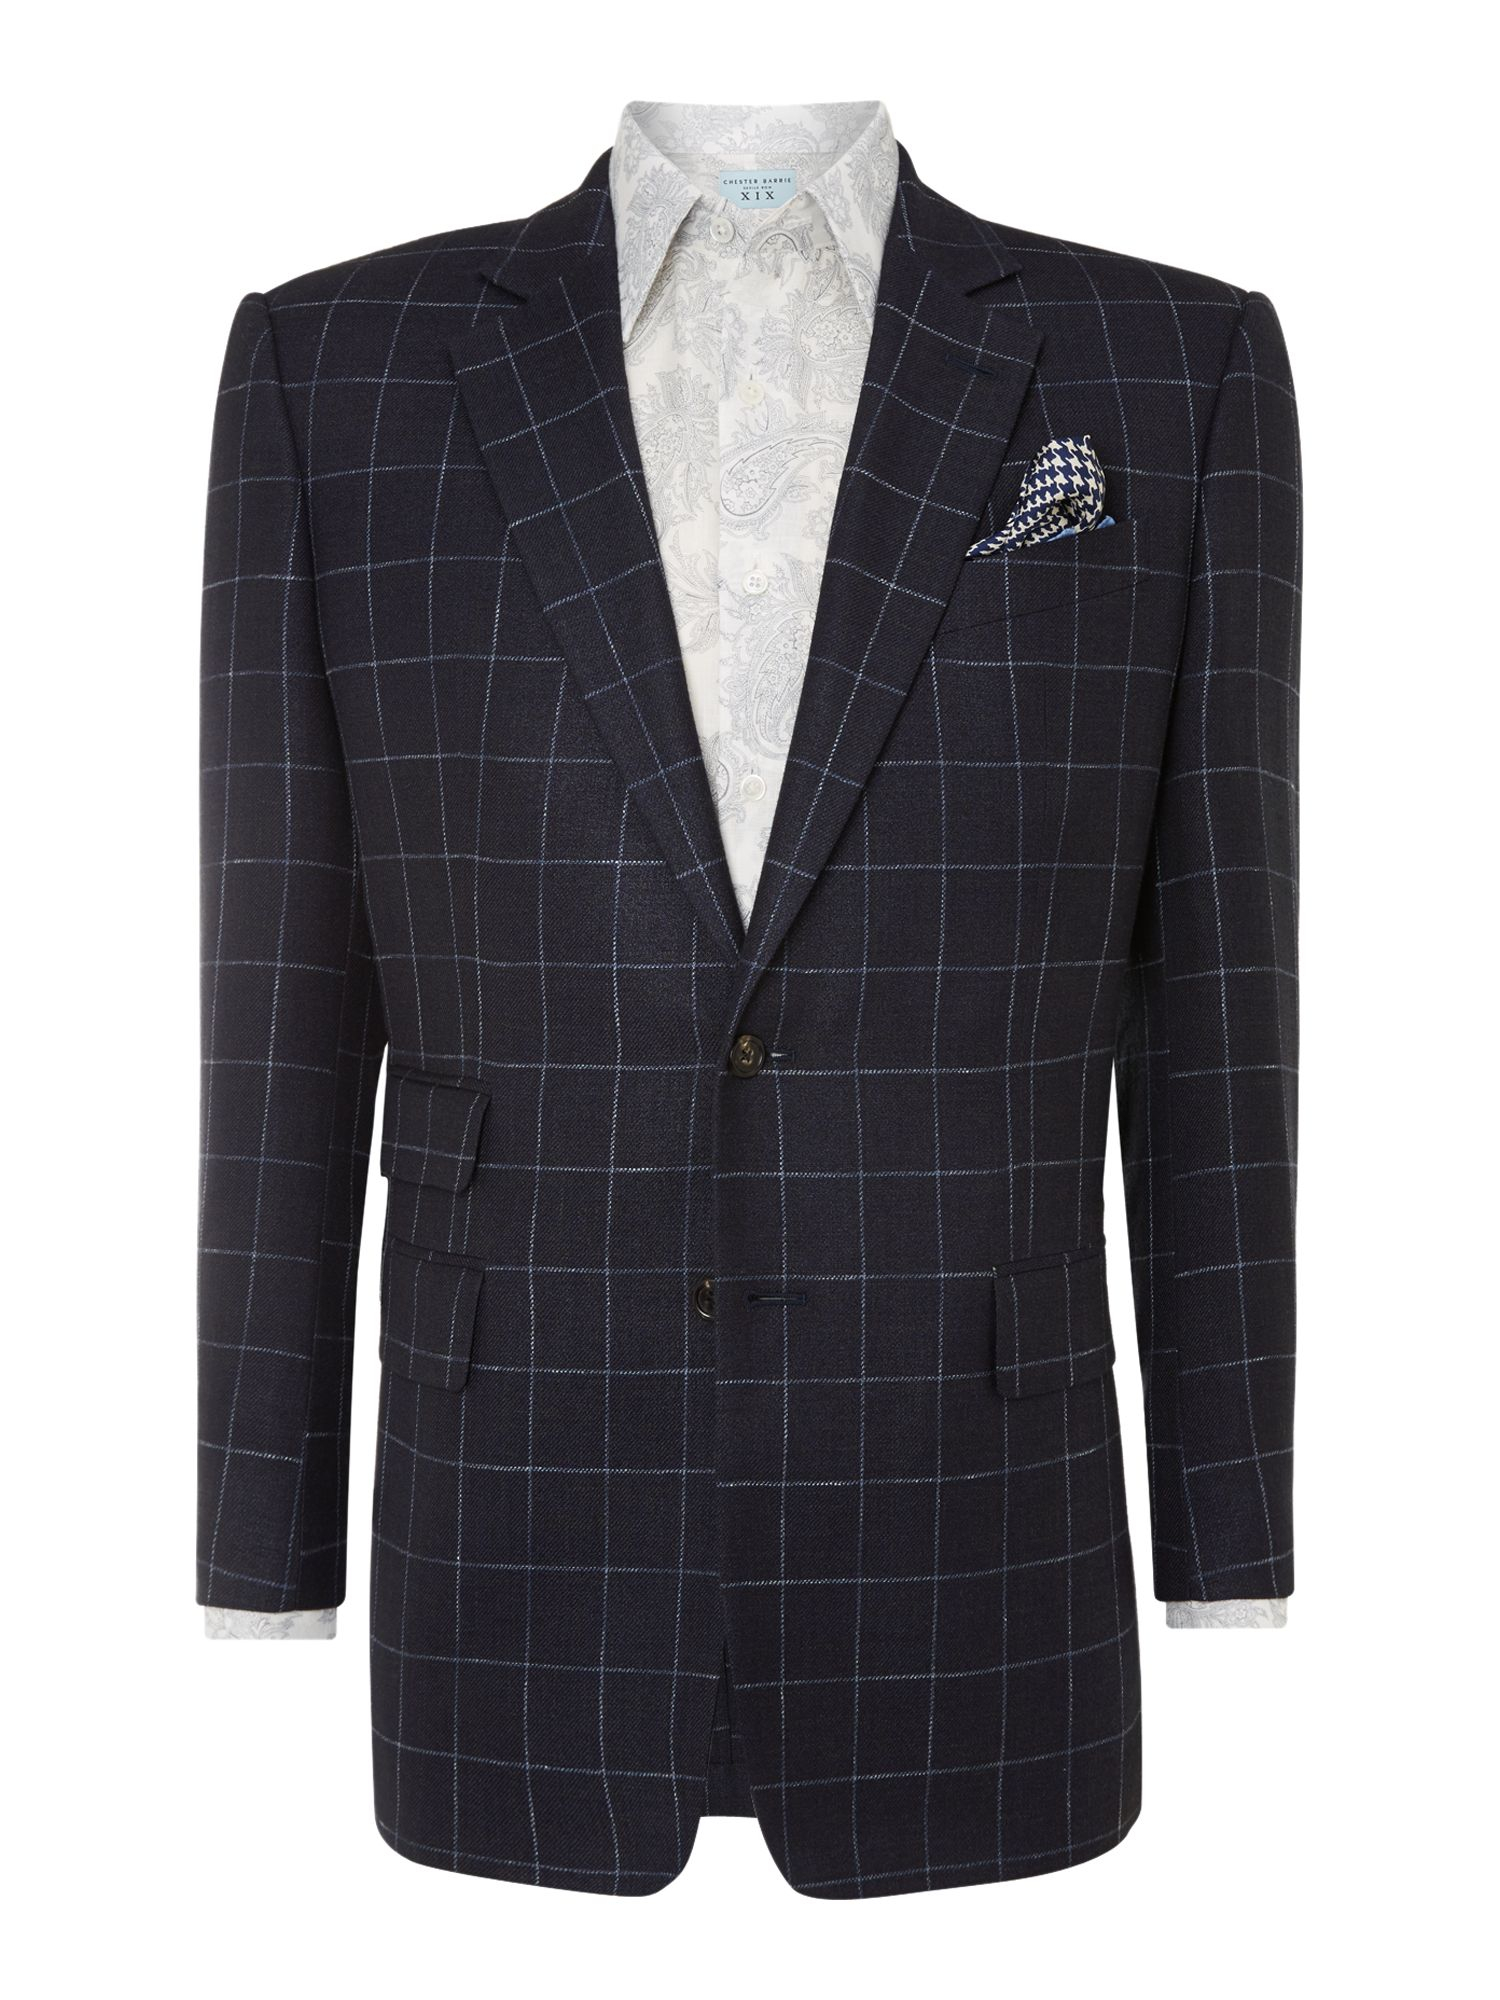 Chester barrie Classic Overcheck Jacket in Blue for Men